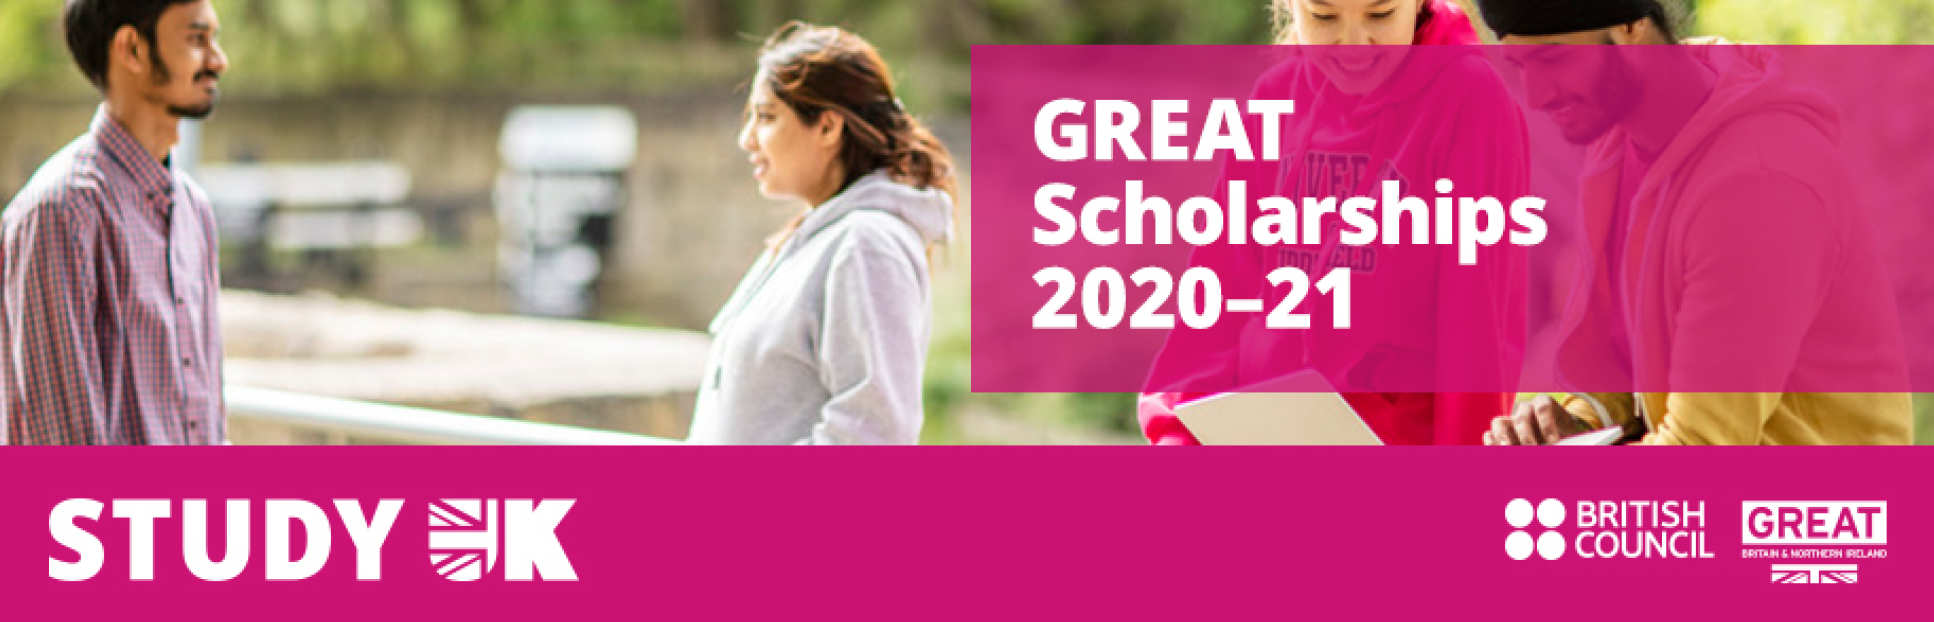 Great Scholarships 2020-21 with British Council and Study UK